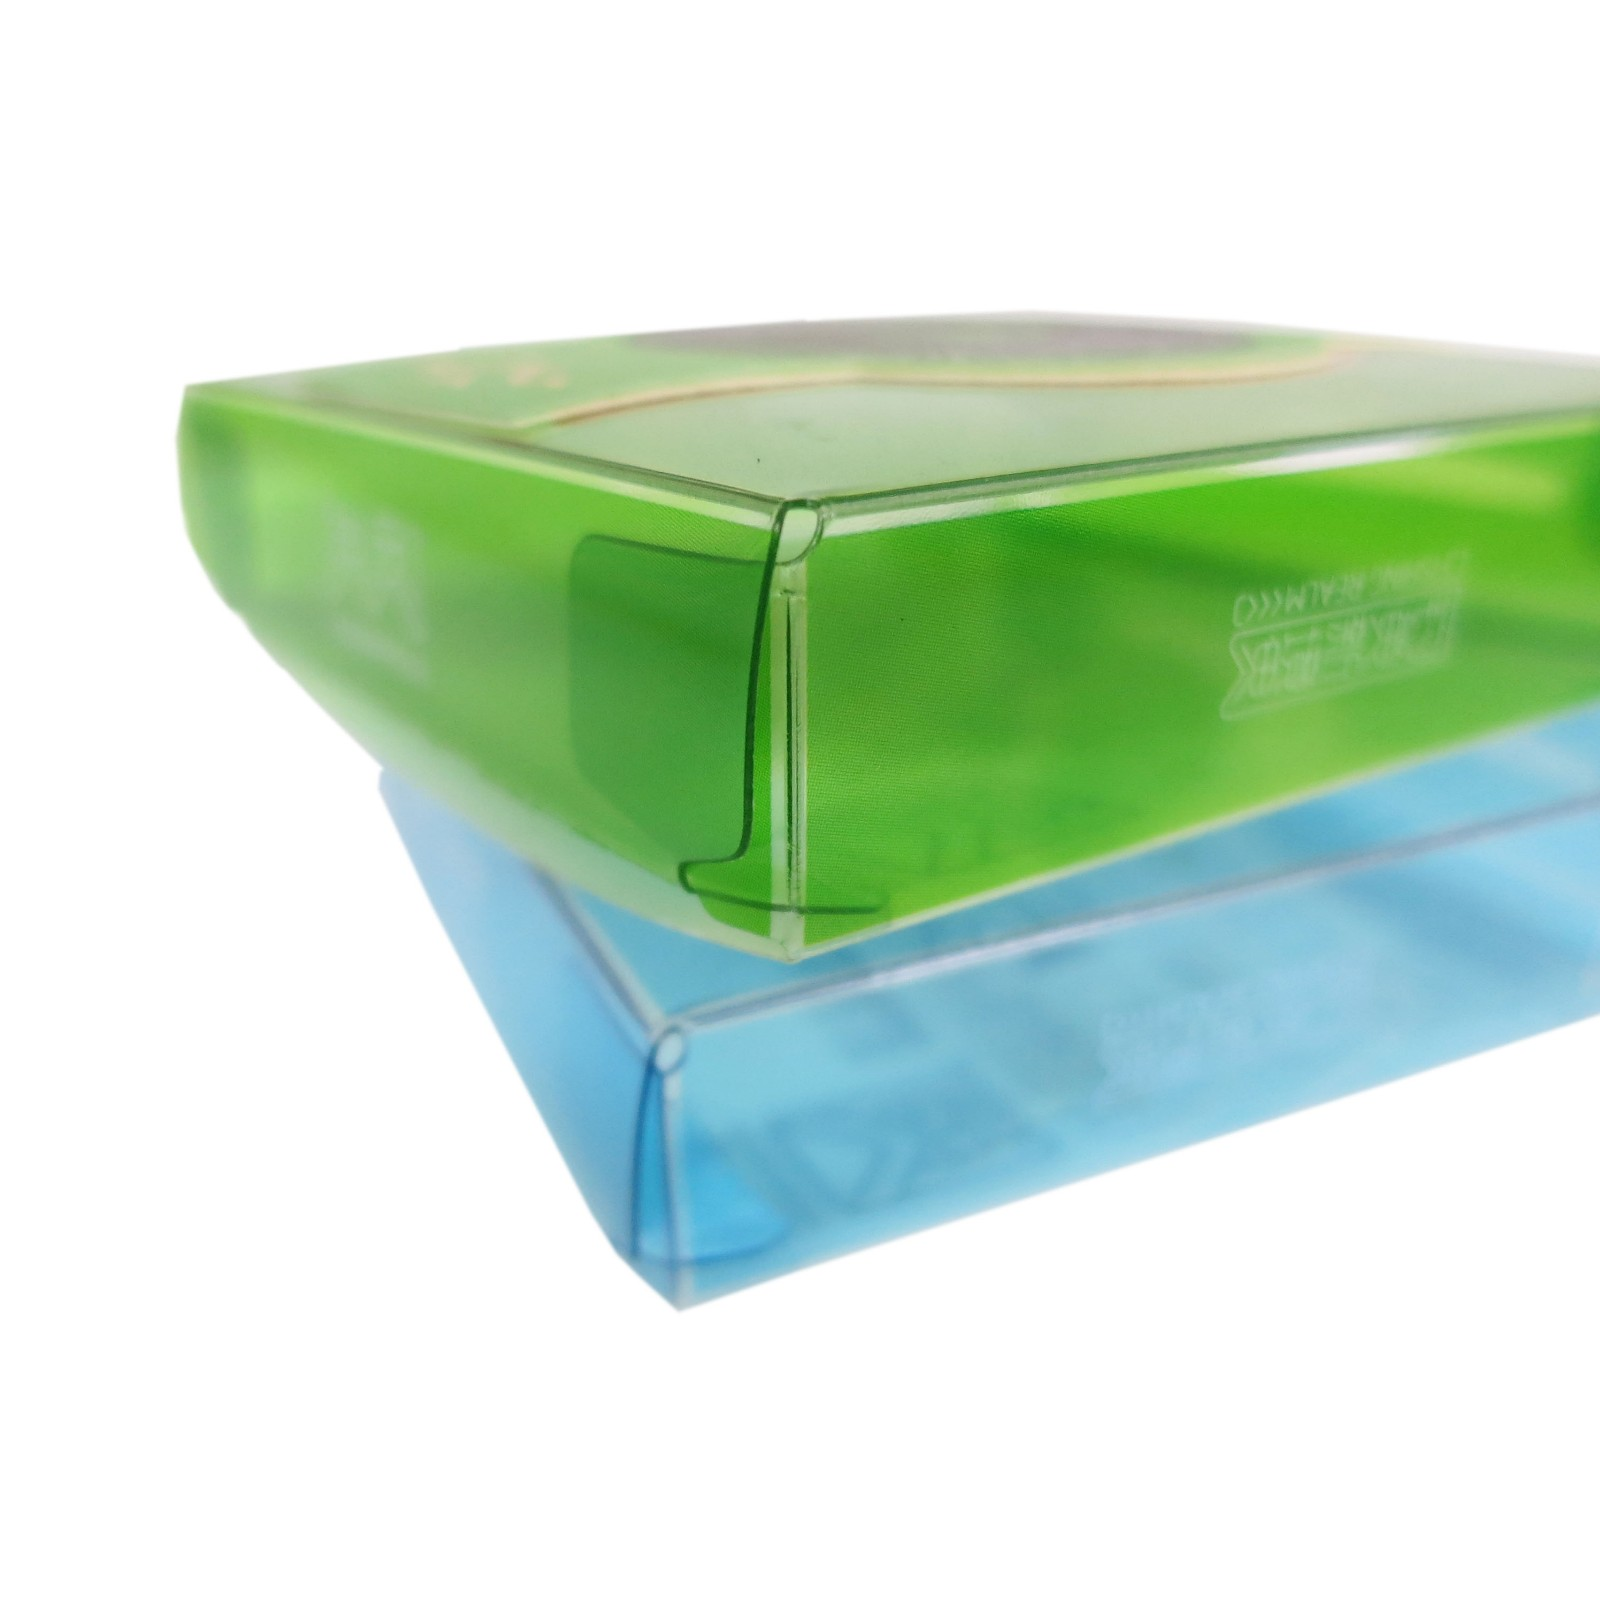 retail plastic box packaging retail for wholesale for food-4